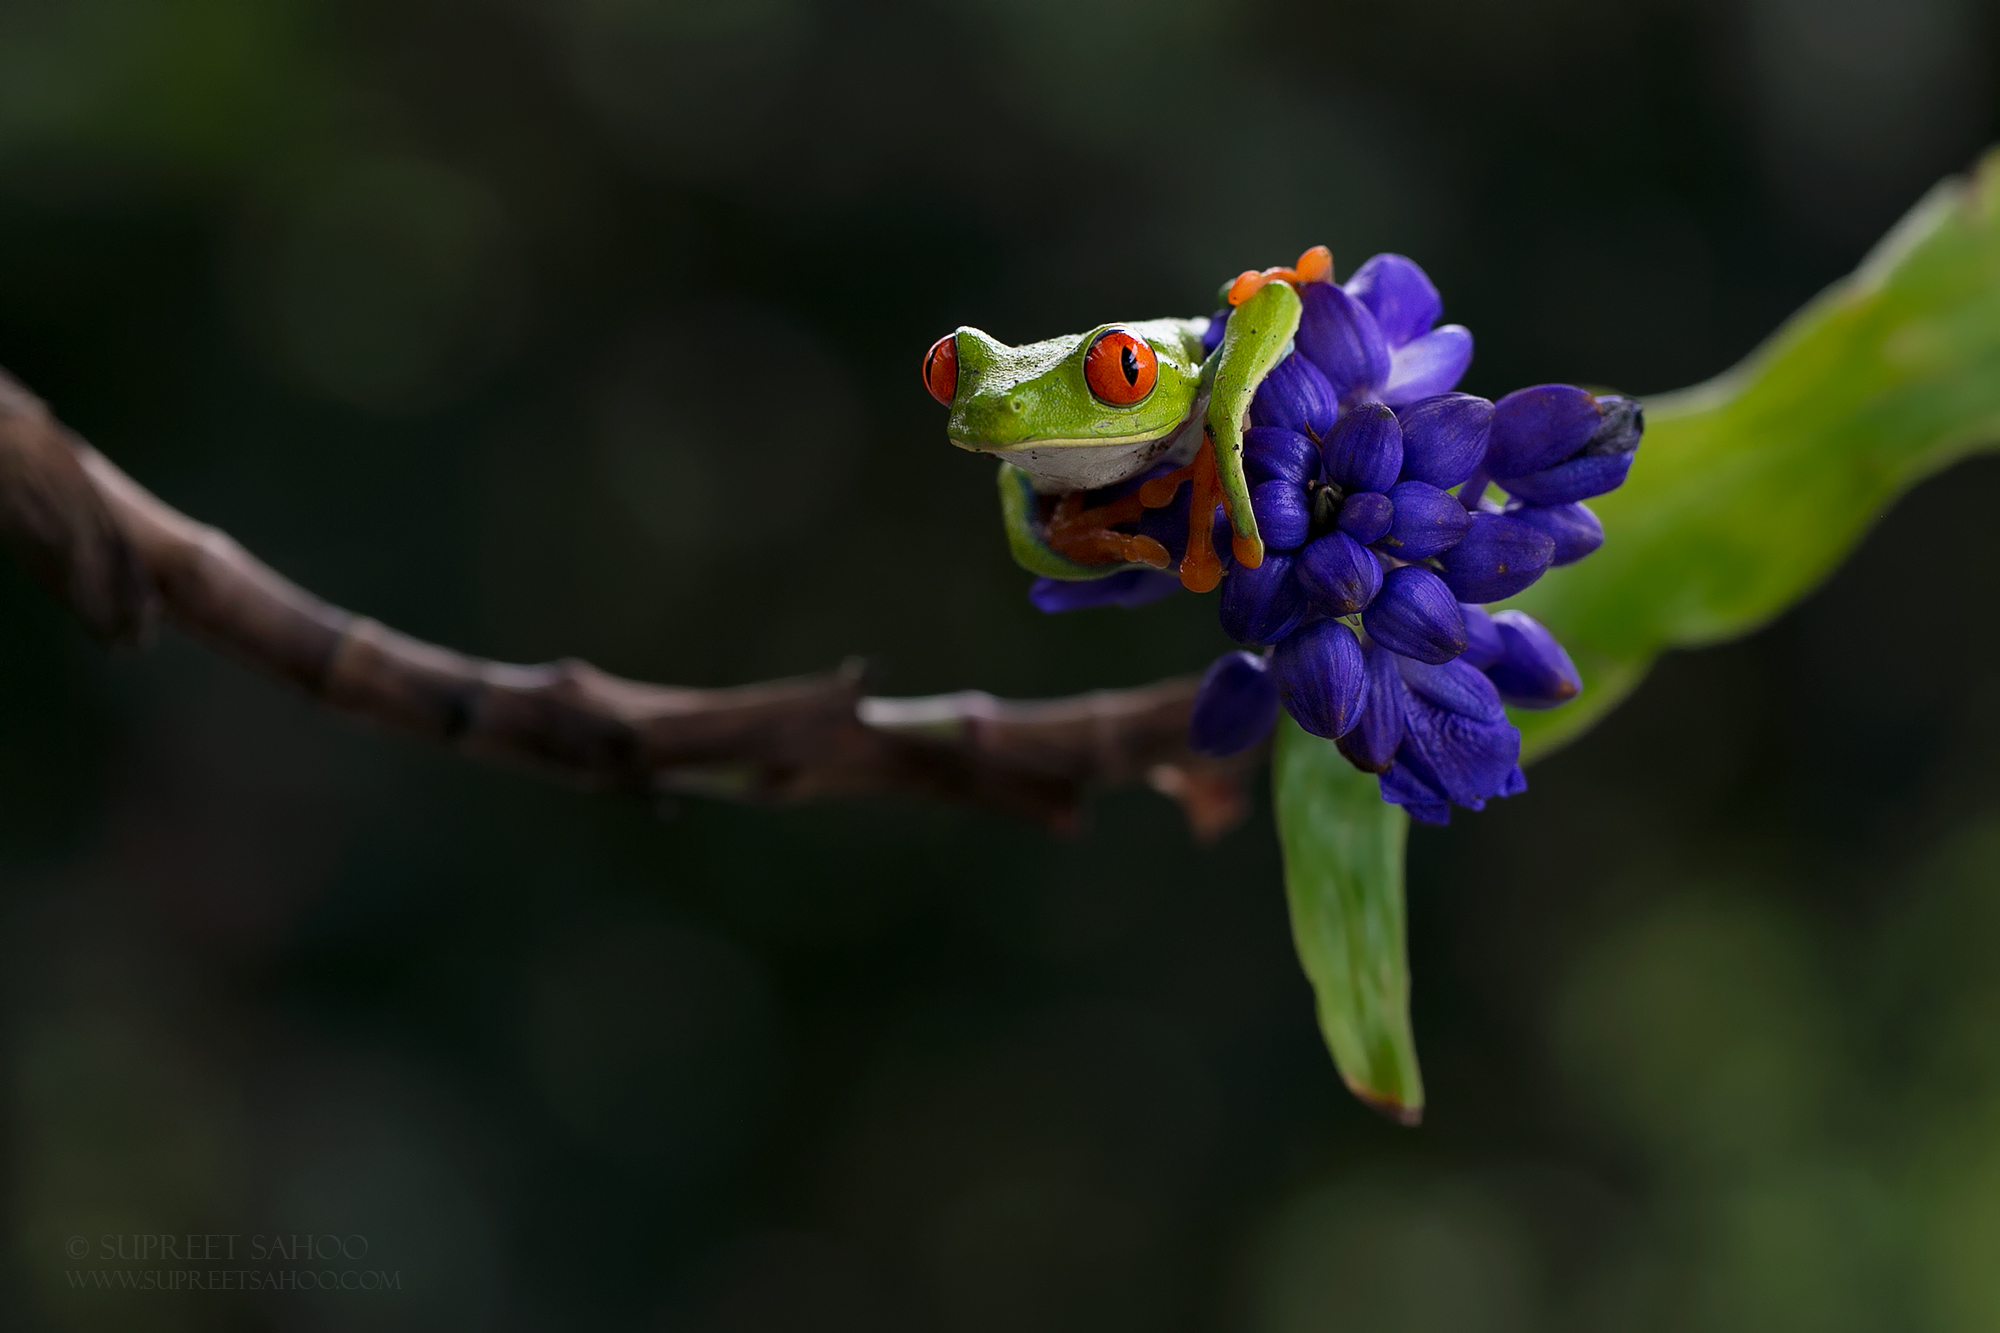 Red eye leaf frog